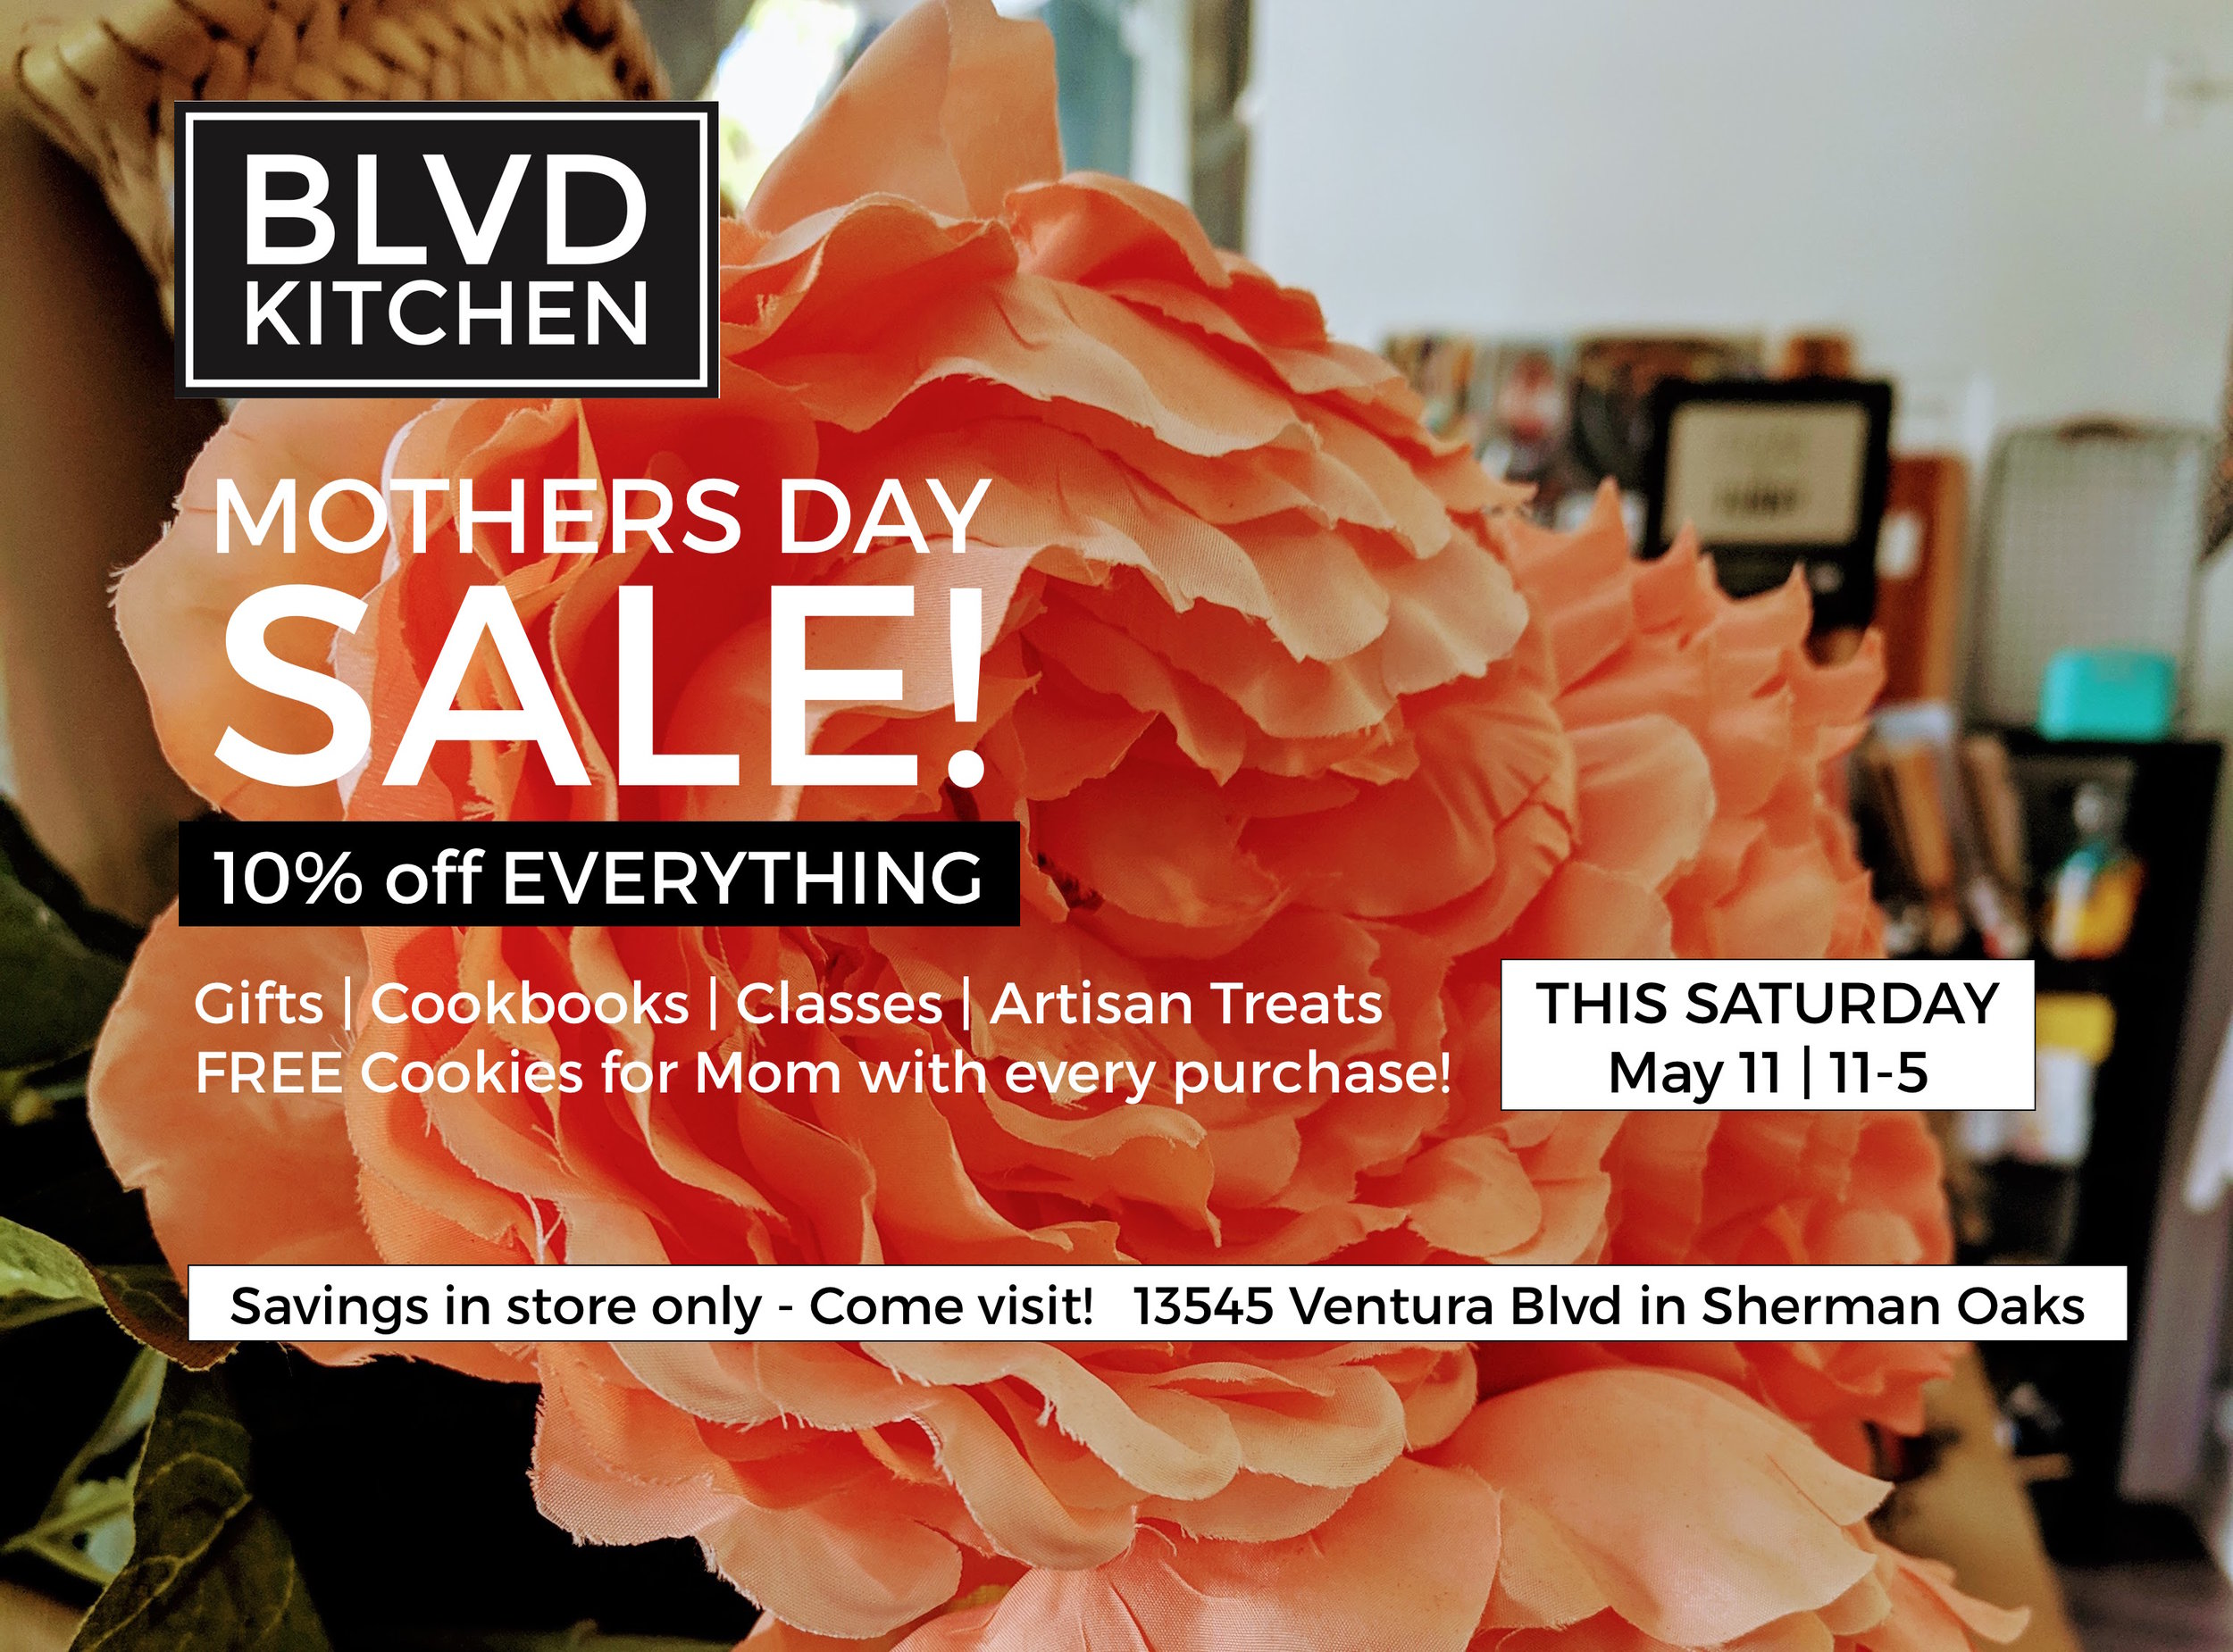 BLVD Mothers Day Sale Flyer.jpg